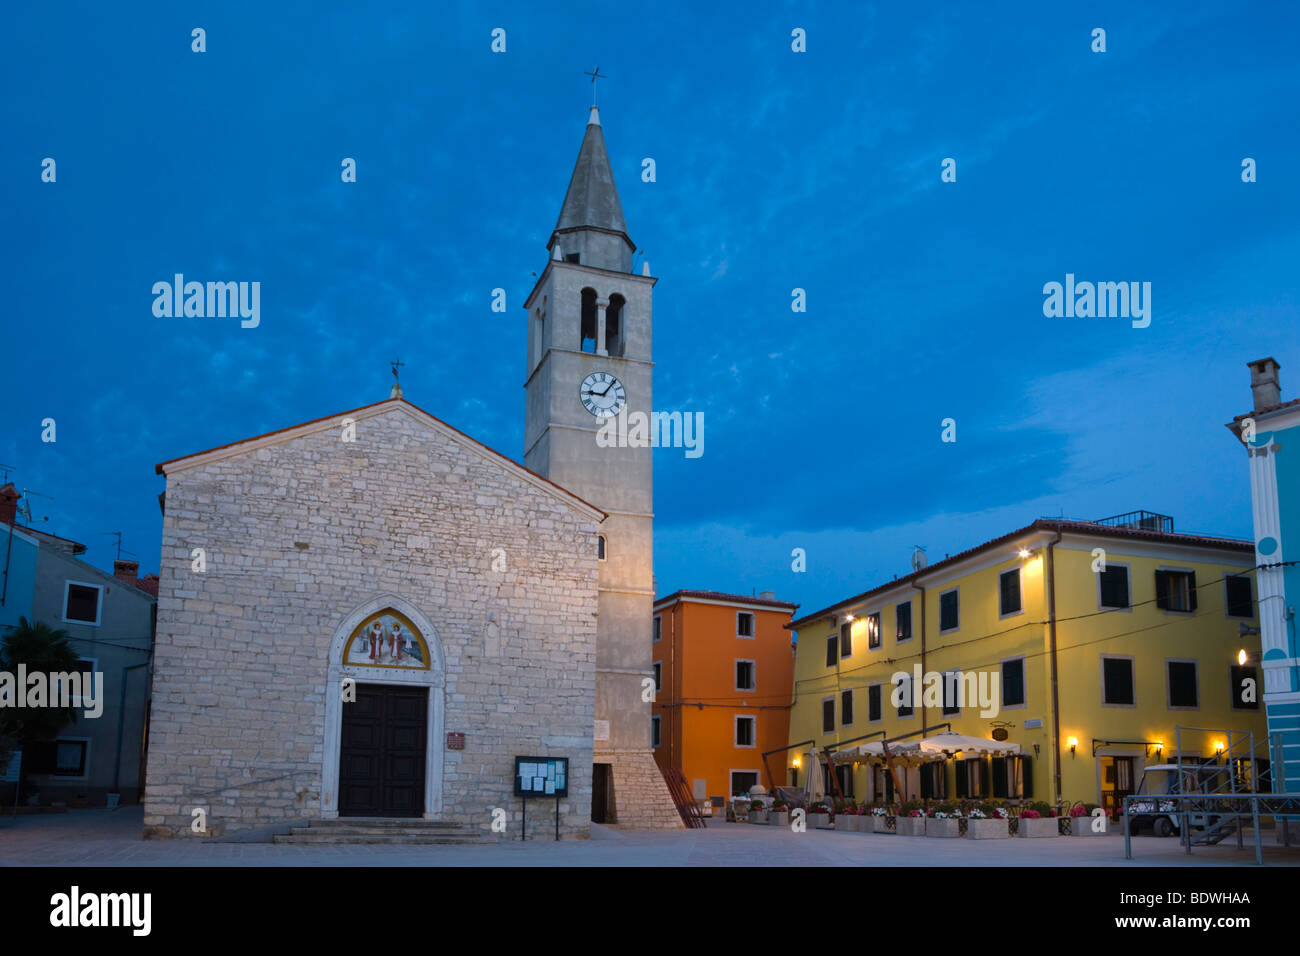 Church of SS. Cosmas and Damian, Crkva Sv Kuzme i Damjana, Titova Riva, Twilight, Fazana, Istria, Croatia, Europe - Stock Image